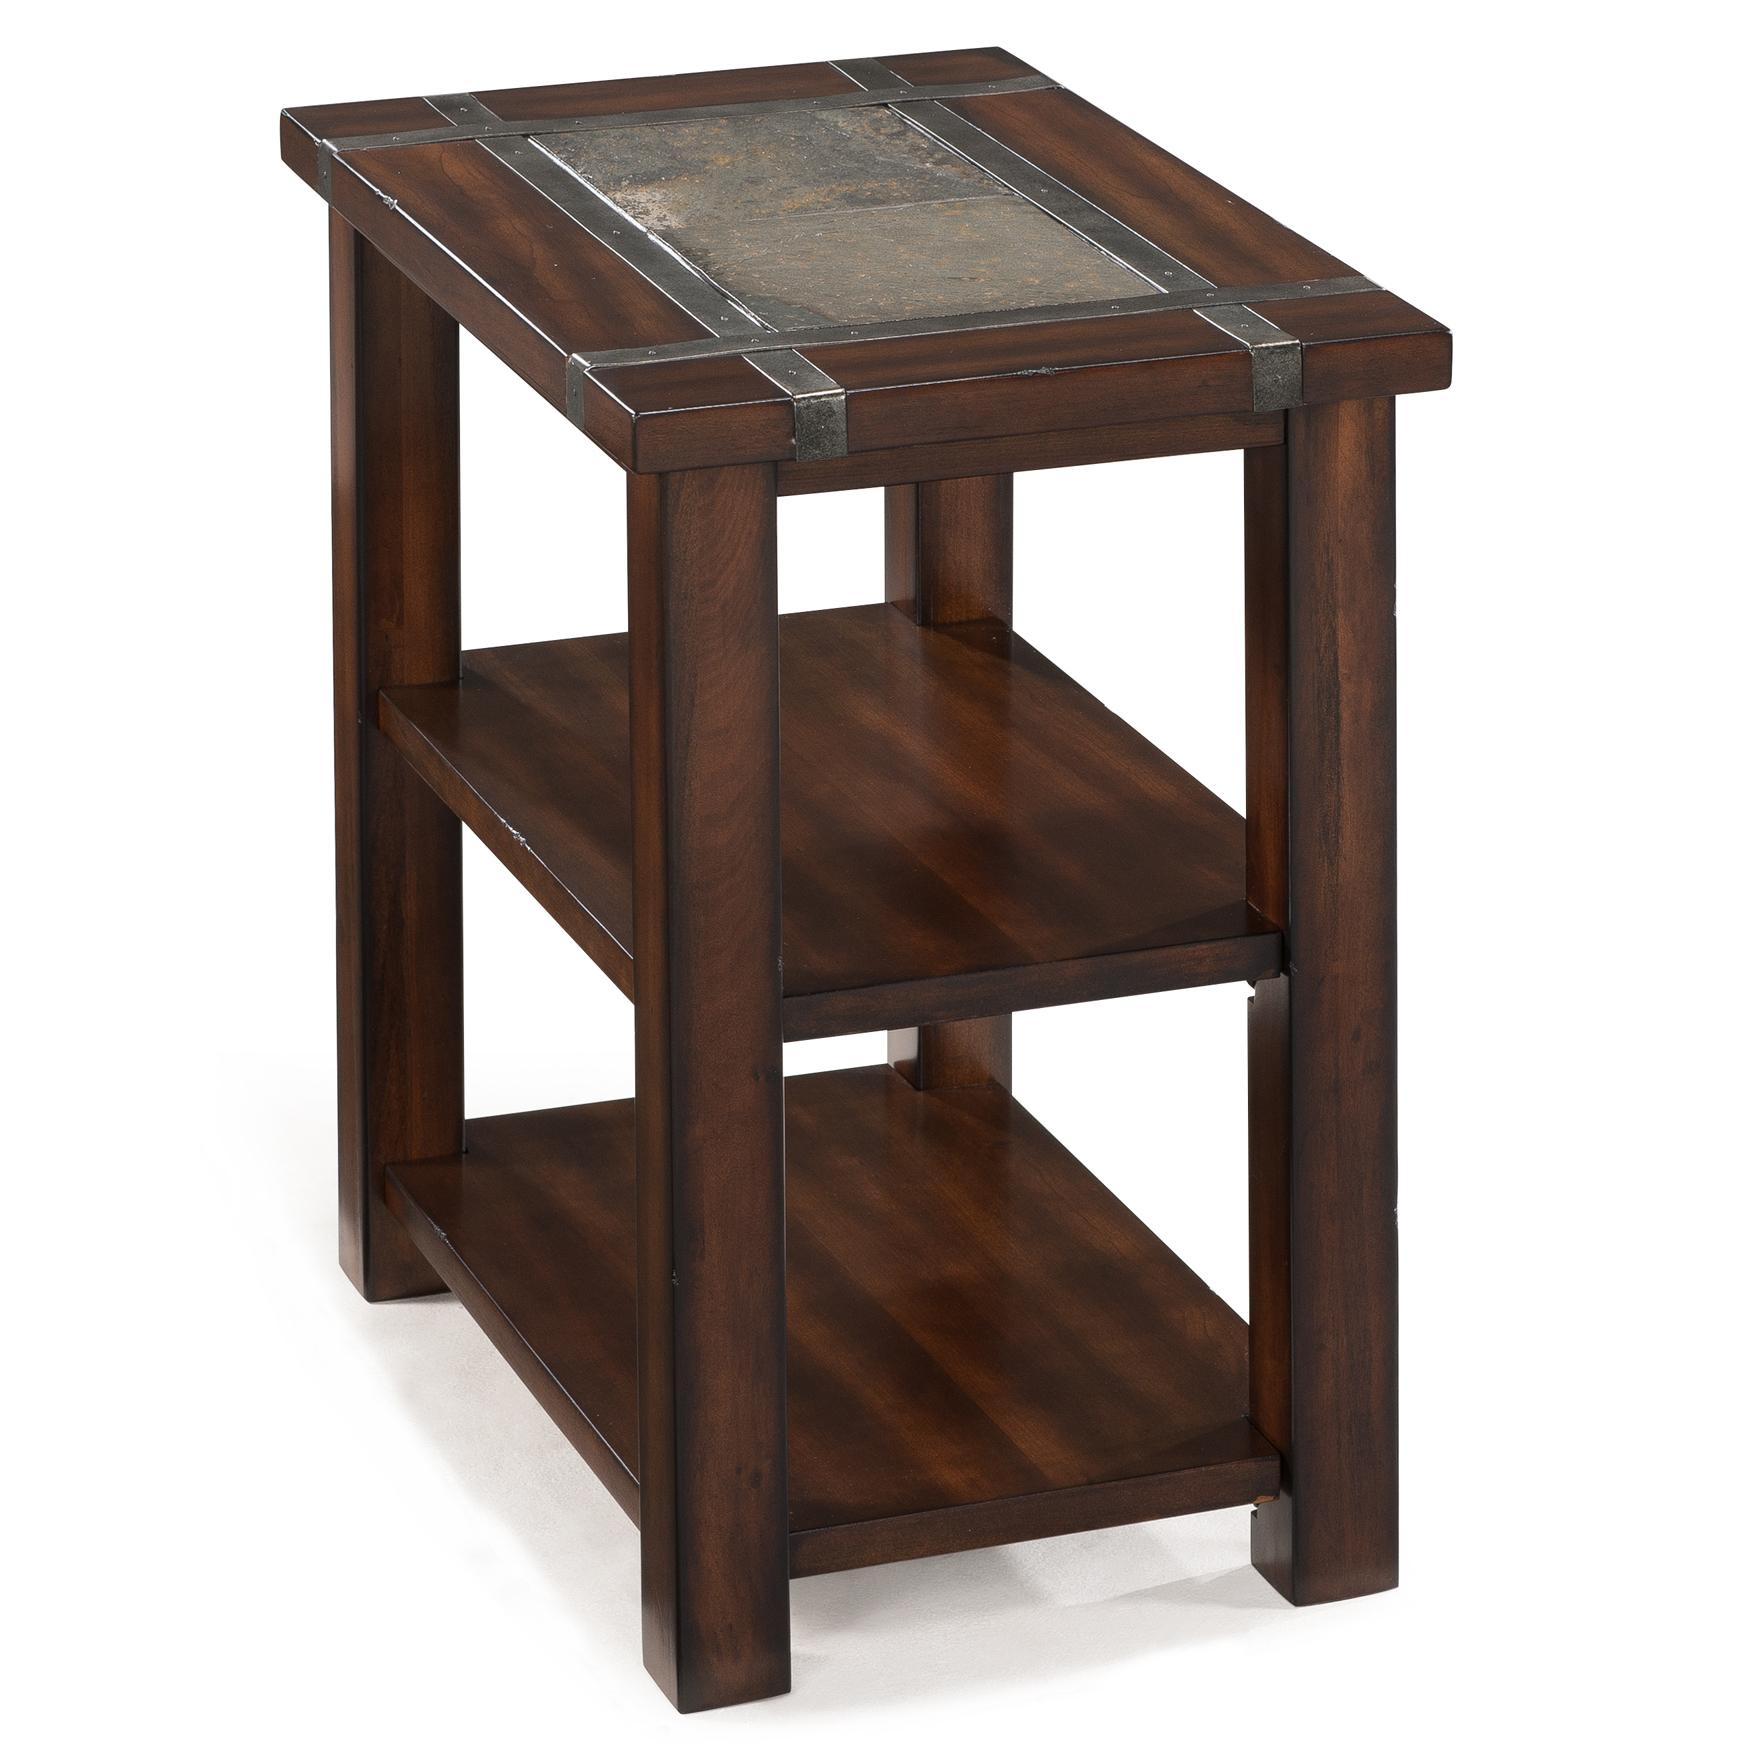 chair side end table wooden chairs pictures roanoke rectangular chairside with 2 shelves